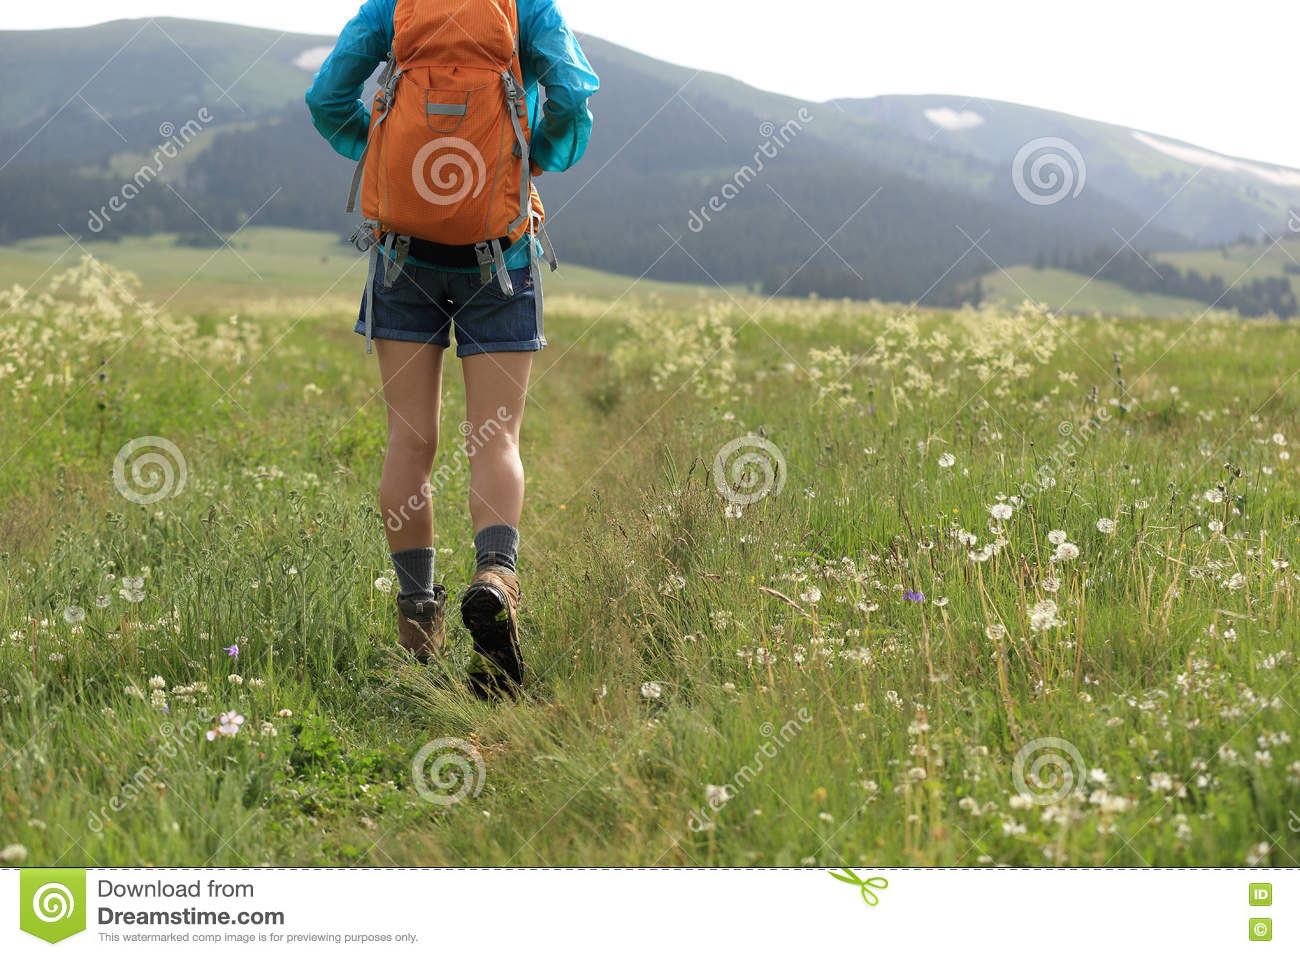 walking on trail in grassland